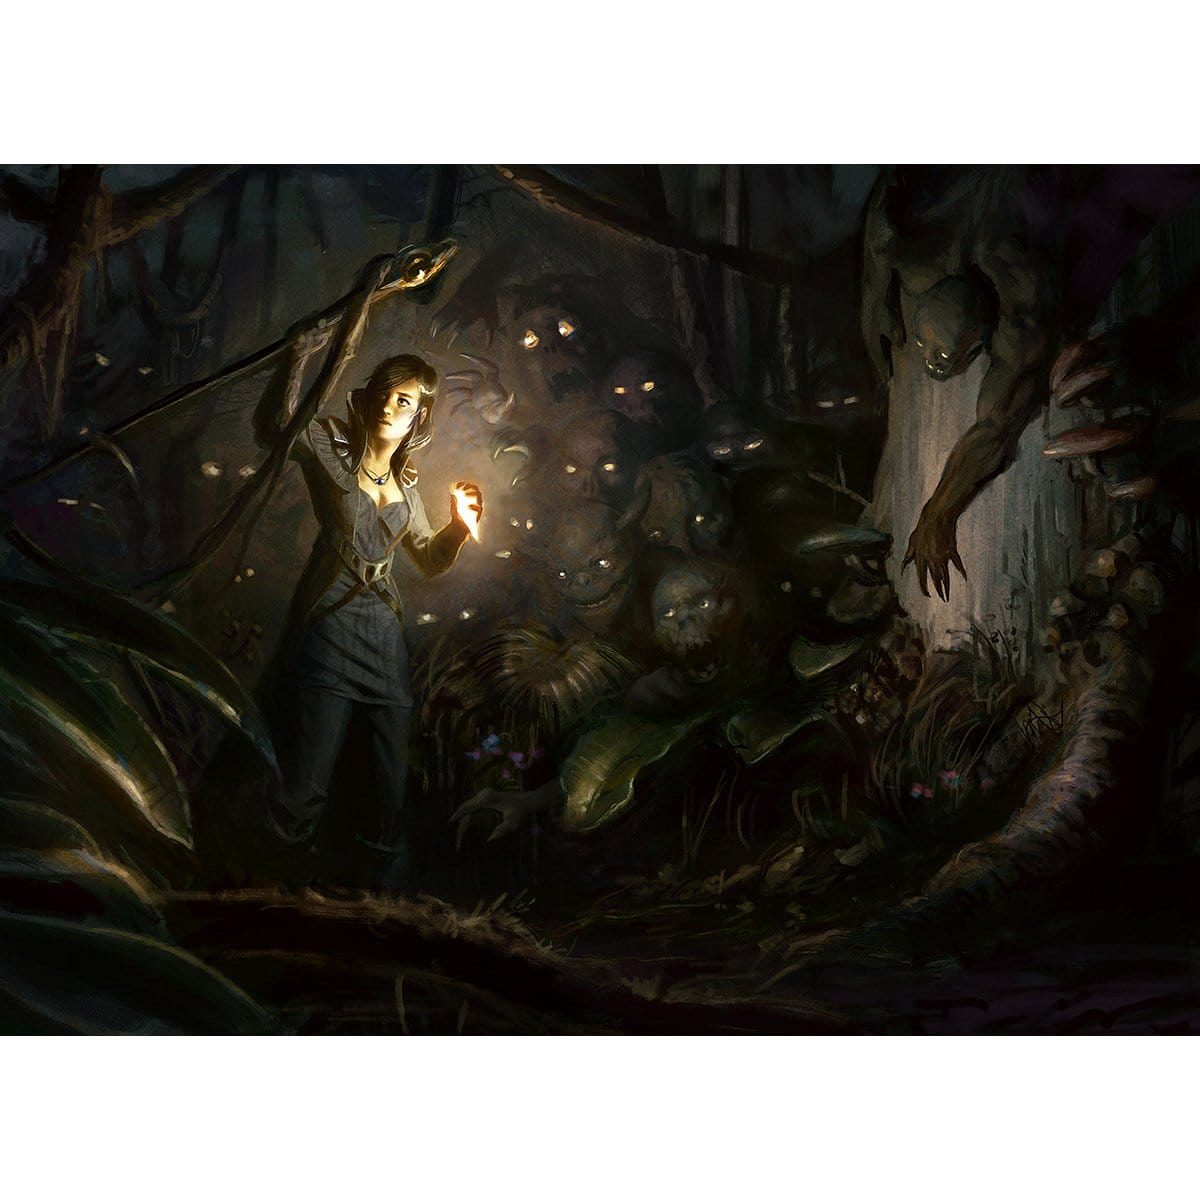 Lurking Predators Print - Print - Original Magic Art - Accessories for Magic the Gathering and other card games